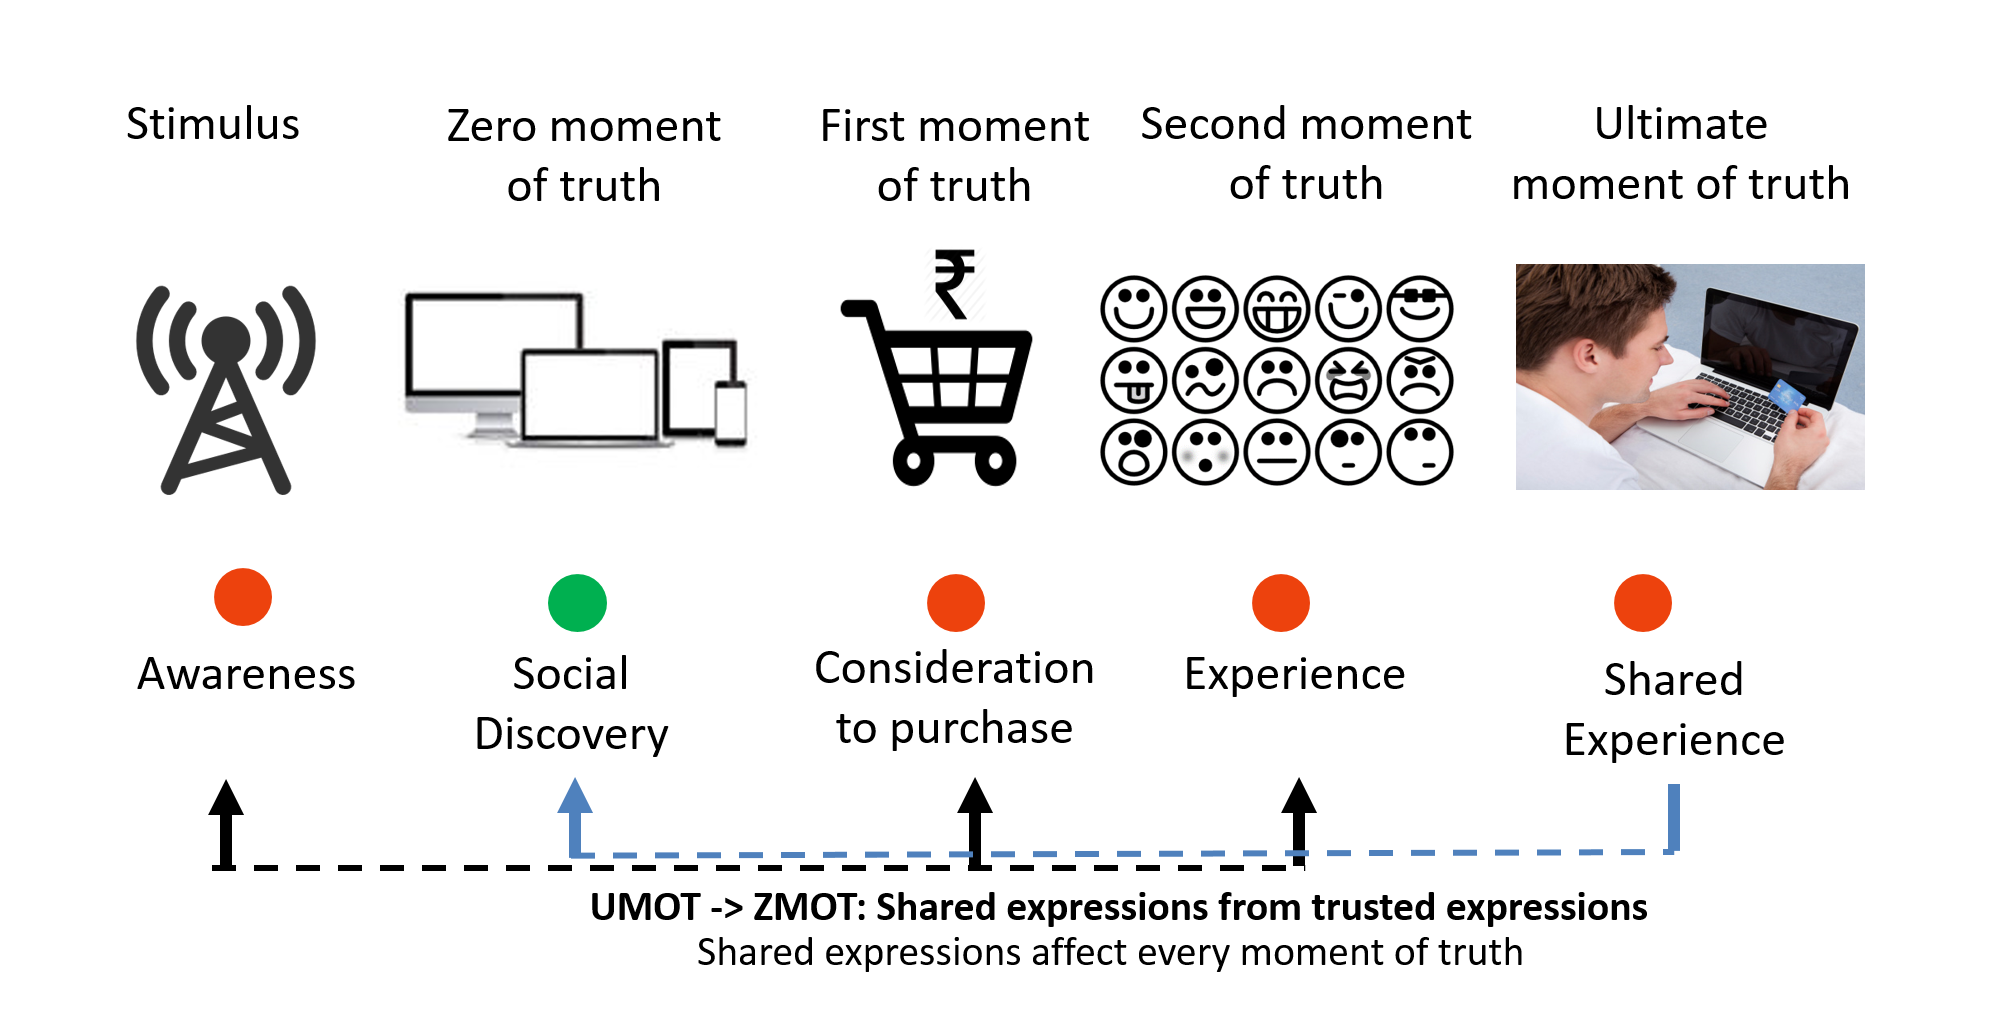 moments of truth, customer experience, customer service, customer satisfaction, customer journey, customer multi-channel experience, omni-channel experience